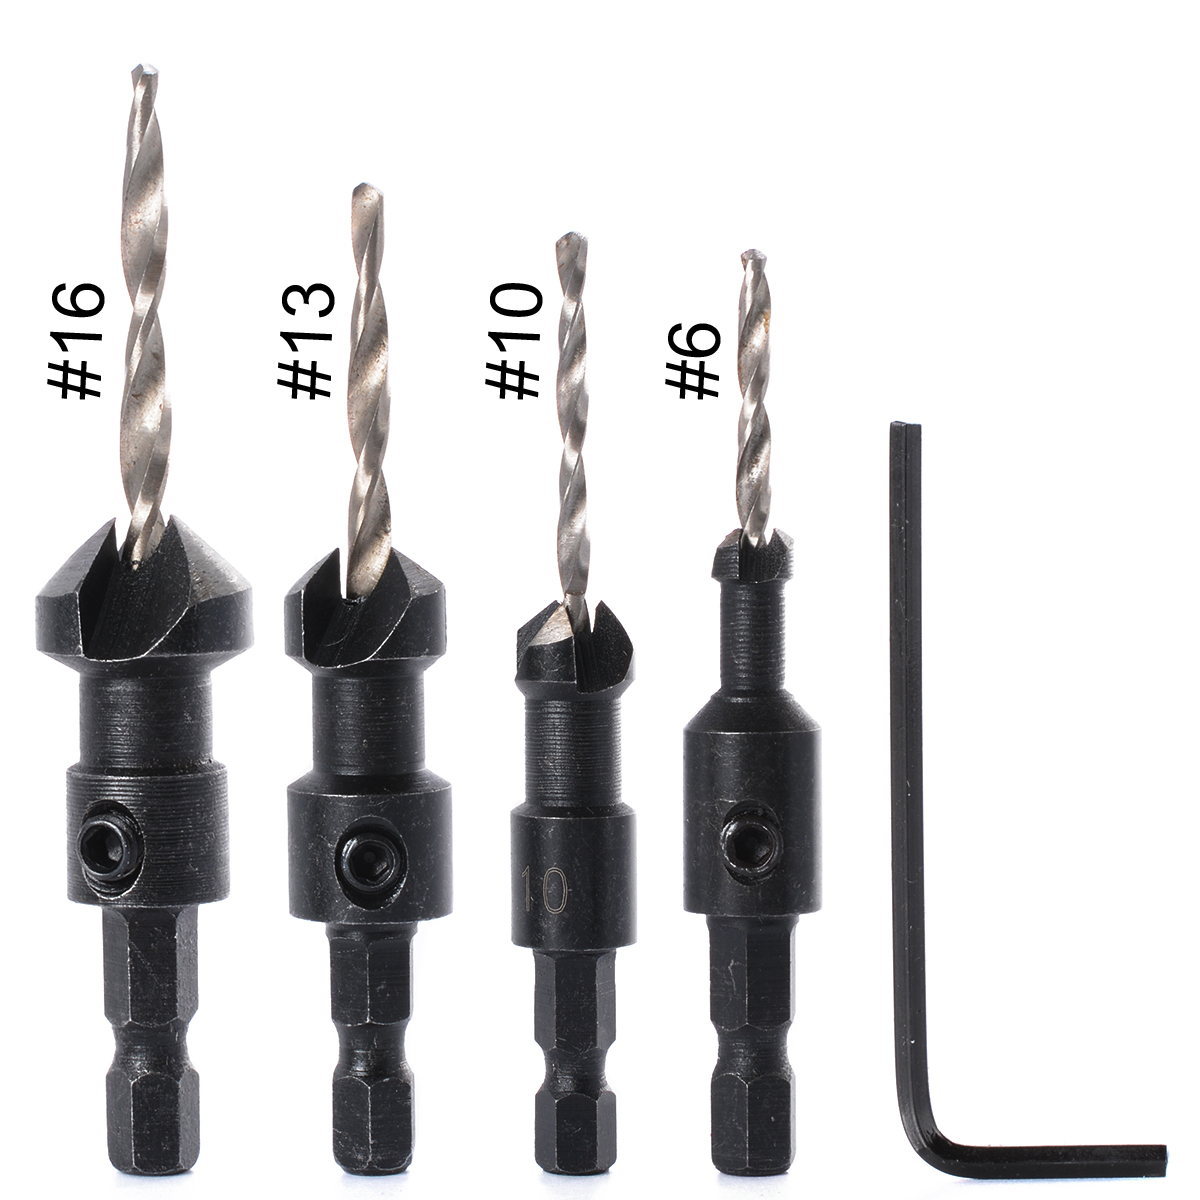 4 Sizes Tapered Counterbore HSS Drill Bit Set